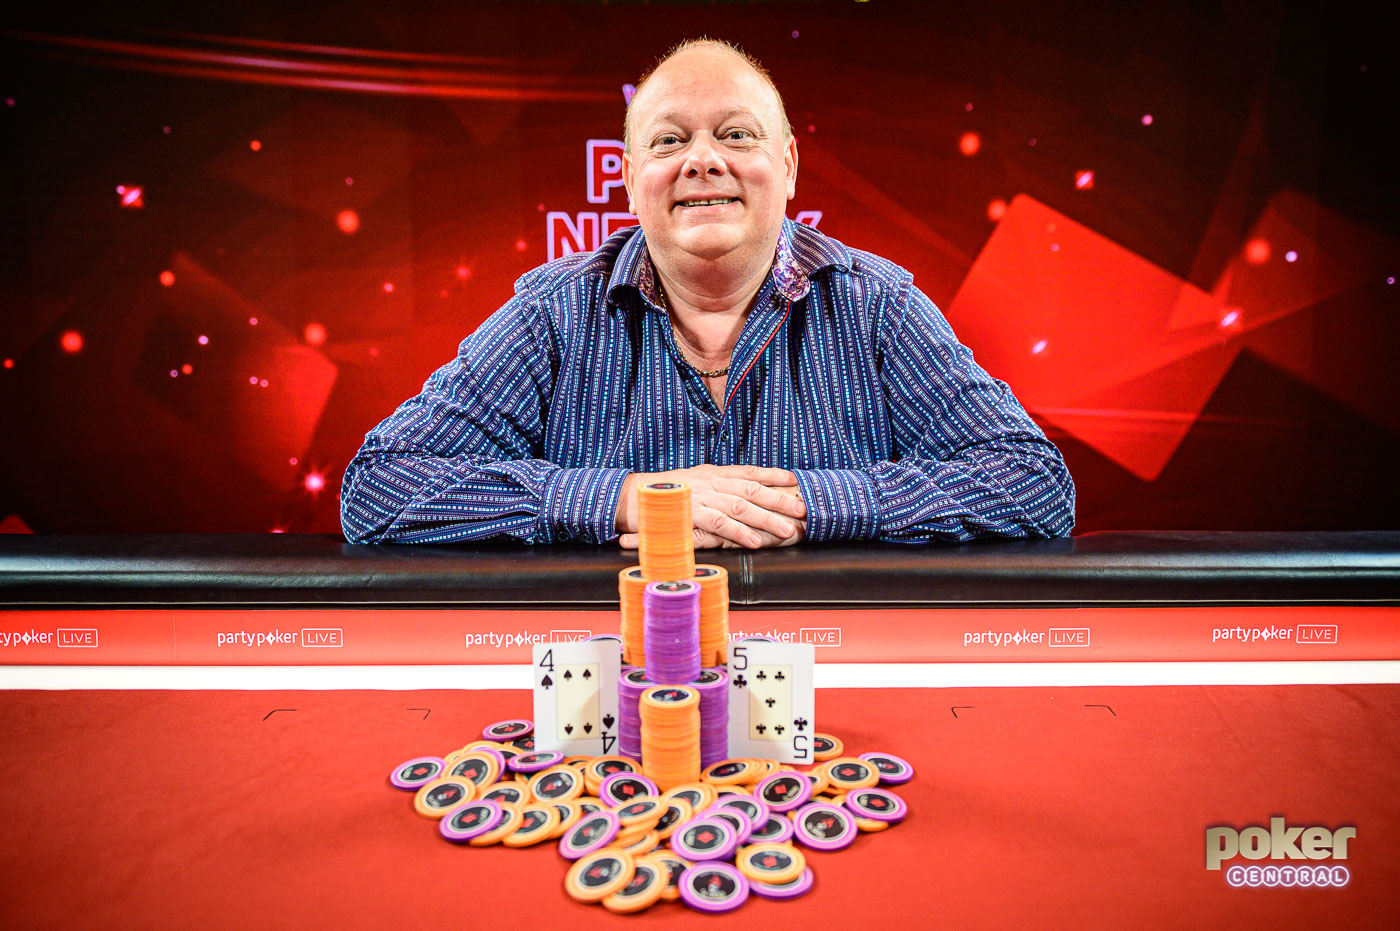 Paul Newey wins British Poker Open Event #3.